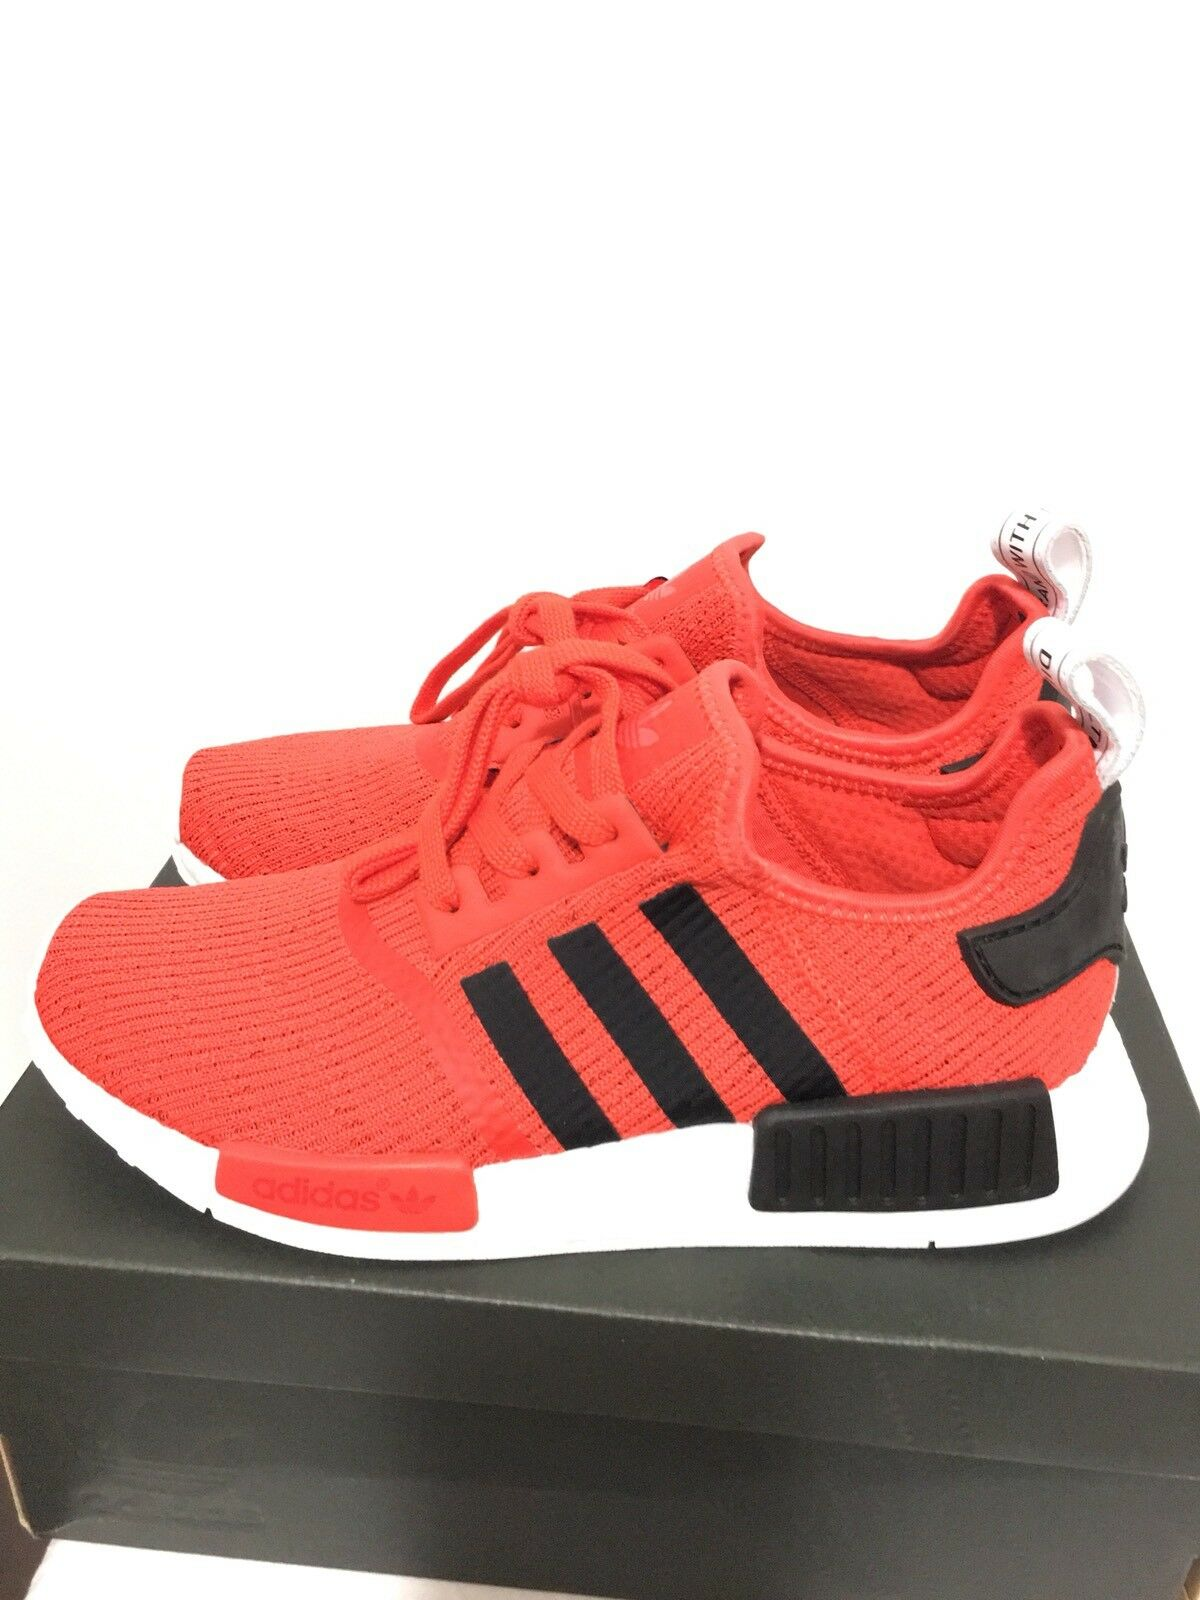 ADIDAS NMD R1 - Core Red / Core Black / Running White - BB2885 - Size 9.5